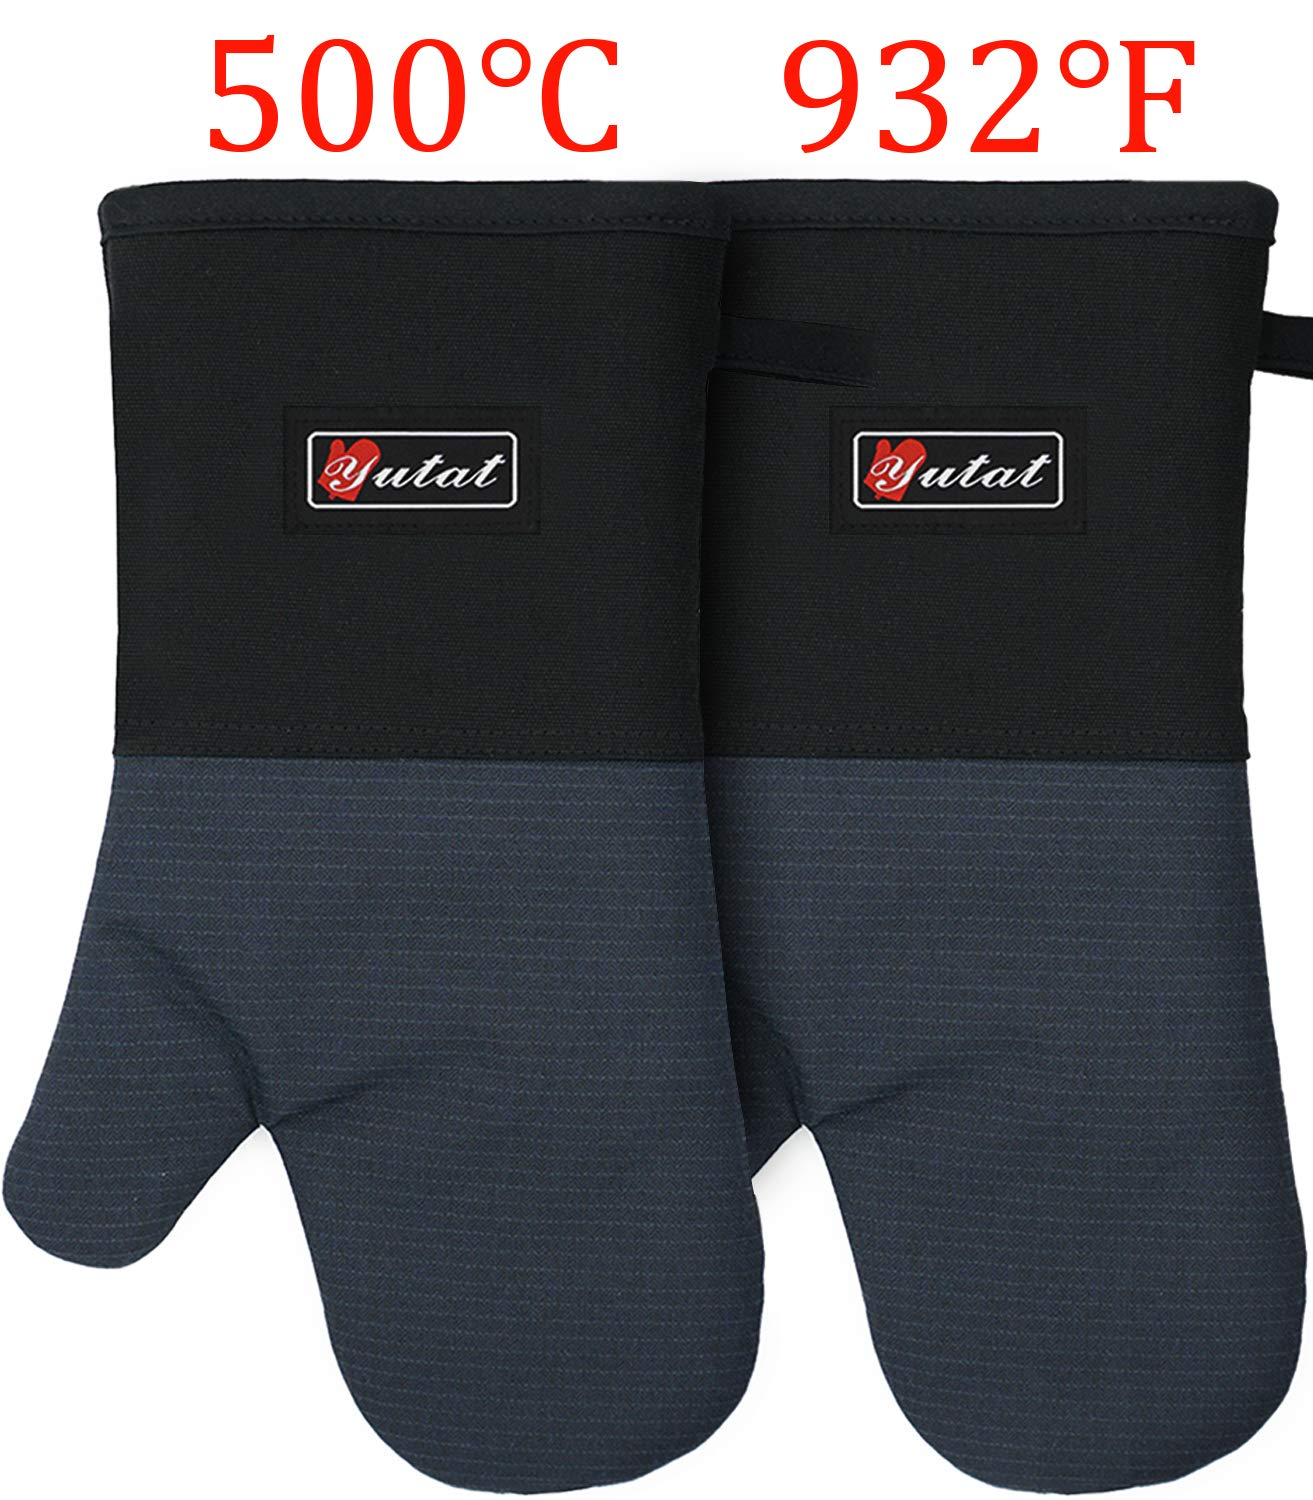 Oven Mitts, Cook Mittens YUTAT Aramid Mitts with Quilted Liner Professionally Protect Your Hand During Baking Doing BBQ or Carry Hot Pot (1 Pair)